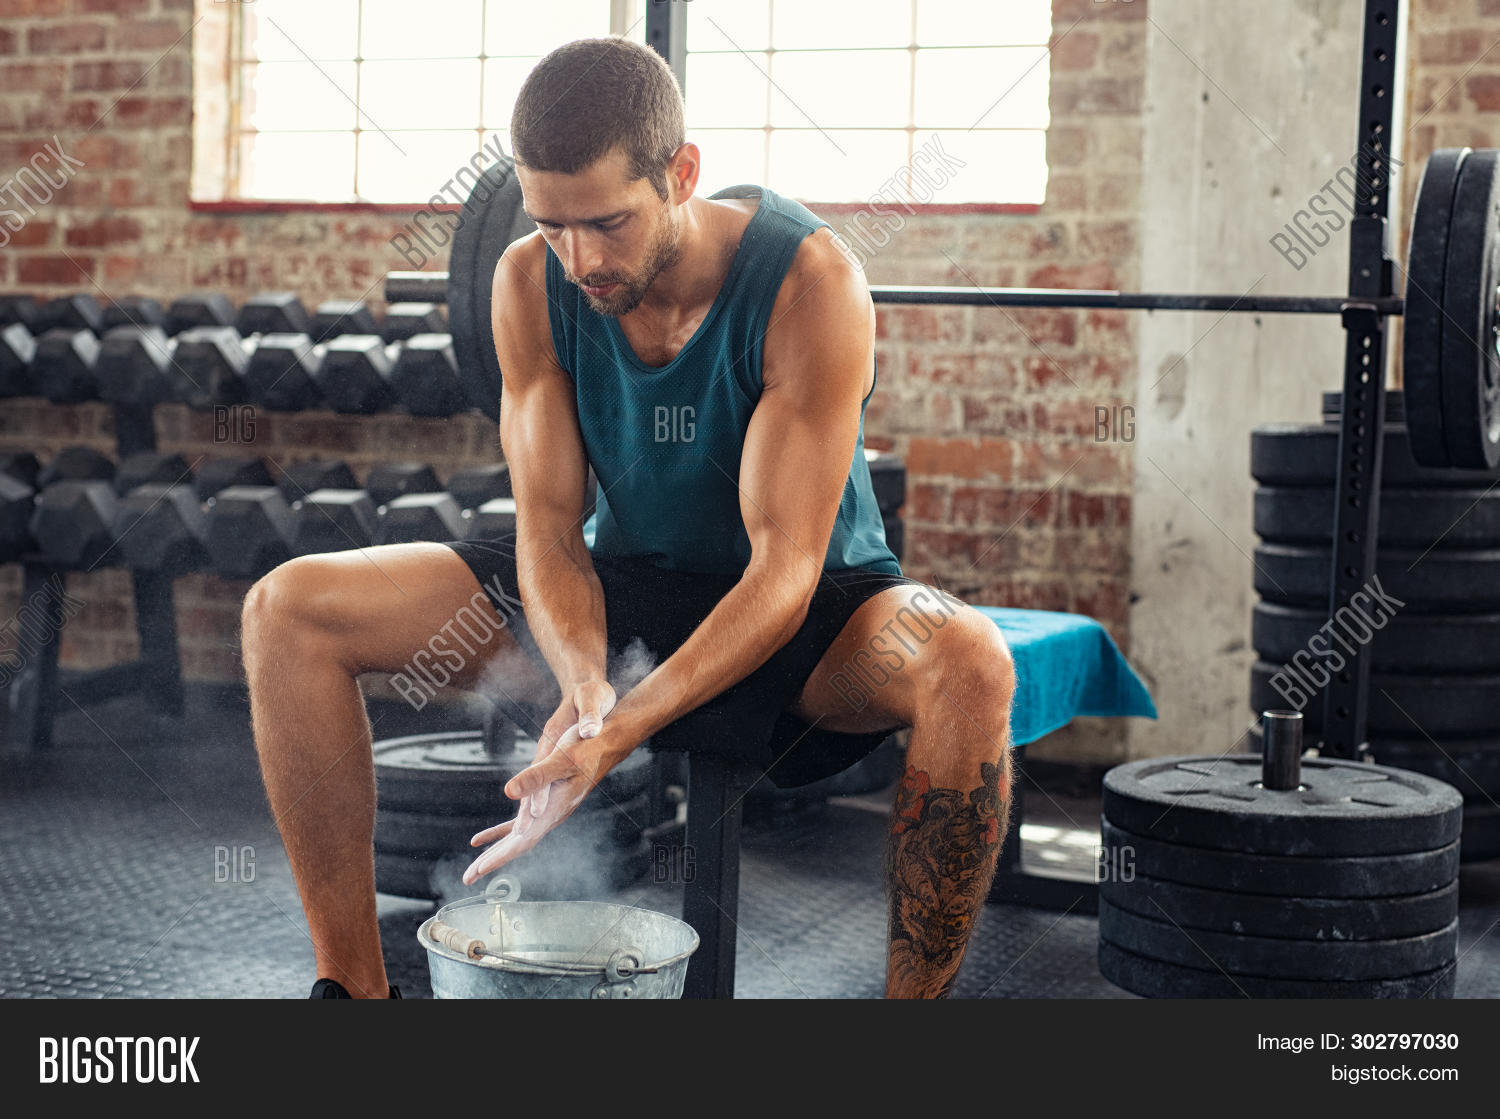 active,athlete,athletic,bench,bodybuilder,bucket,chalk,challenge,clapping,concentrated,concentration,cross,crossfit training,dedication,determination,determined man,effort,exercise,fit,fitness,fitness man,fitness training,gym,gym workout,gymnasium,hand,healthy,lifting,magnesium,magnesium powder,man,muscle,muscular,people,powder,preparing,press,rubbing hands,sport,sportswear,strength,strong,talcum,training,weight,weight lifting,workout,young,young man